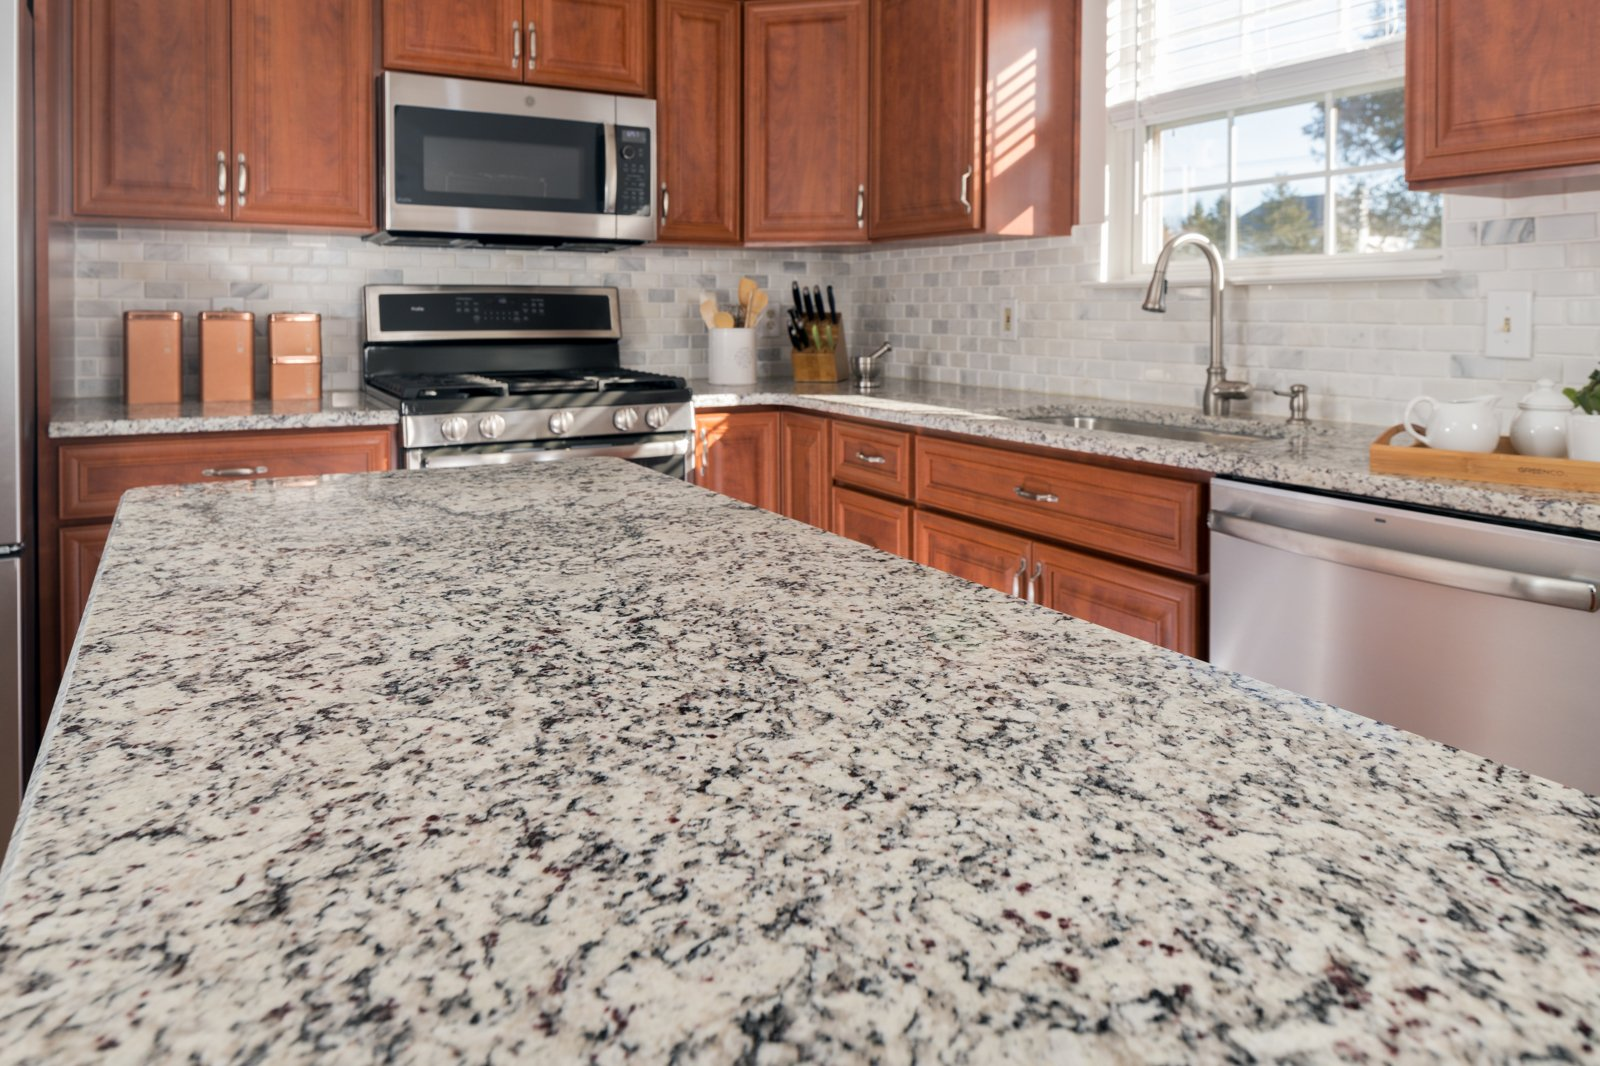 Most Popular Granite Countertop Colors [UPDATED]